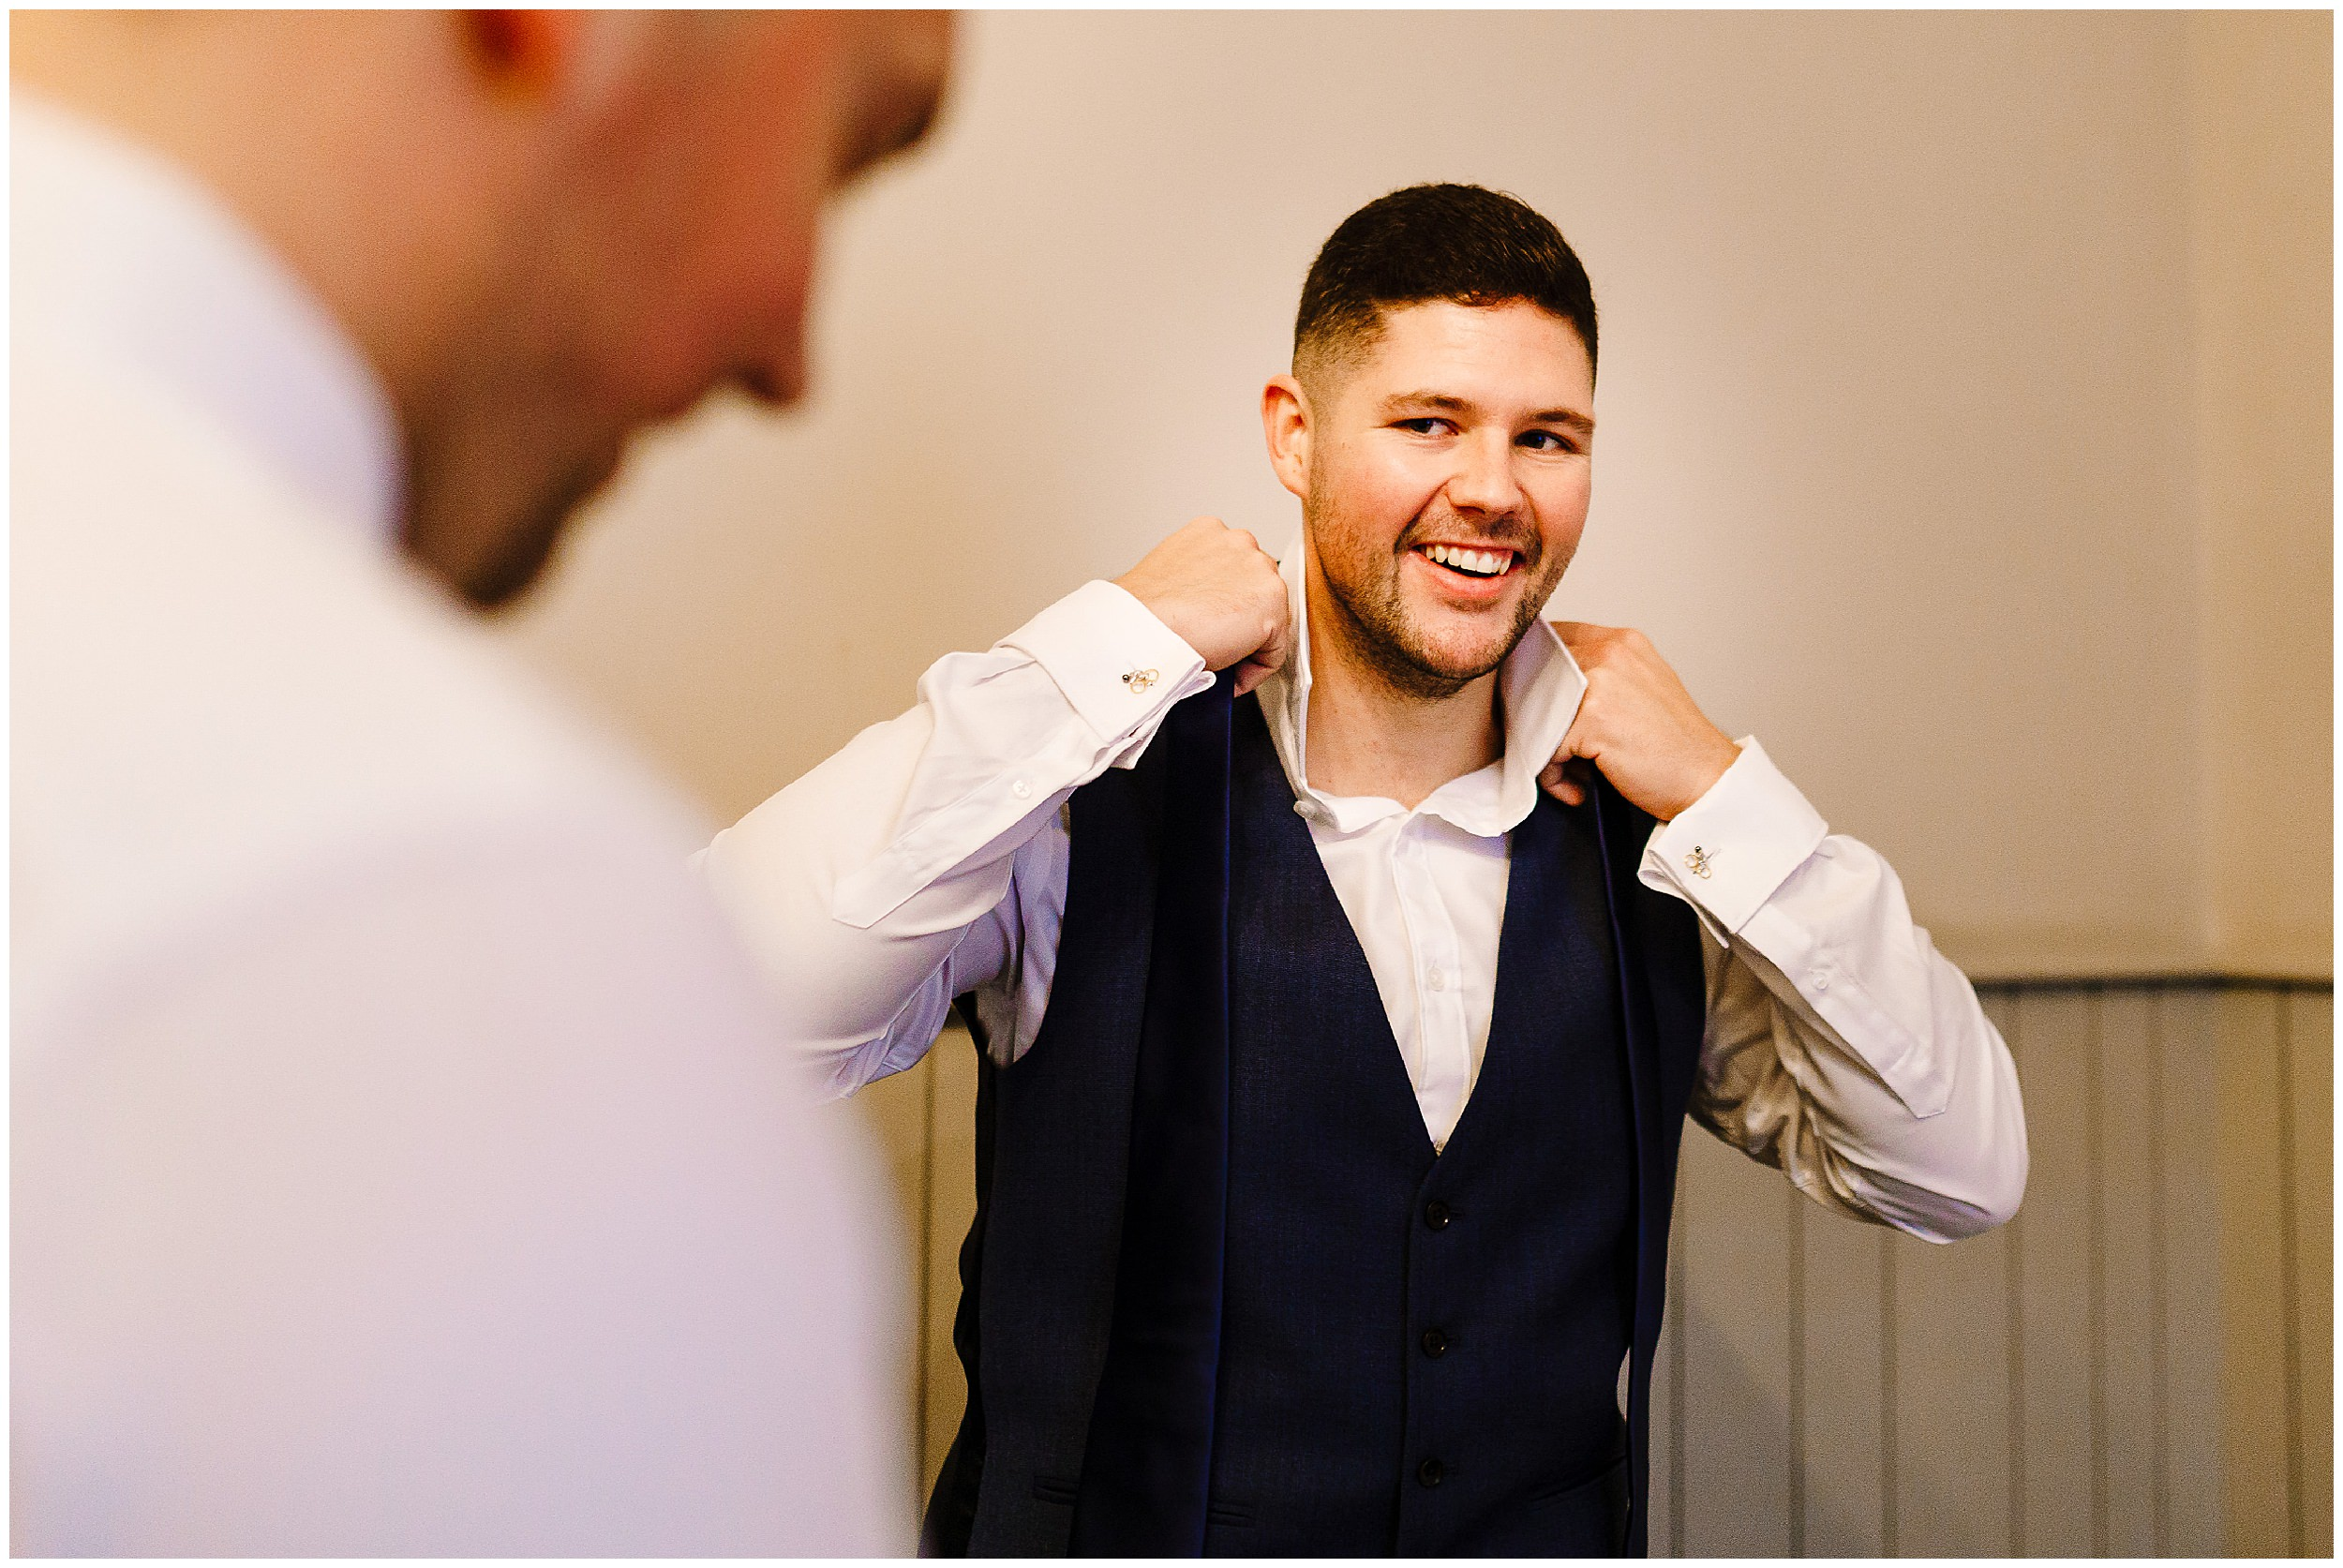 A groom and his best man getting ready